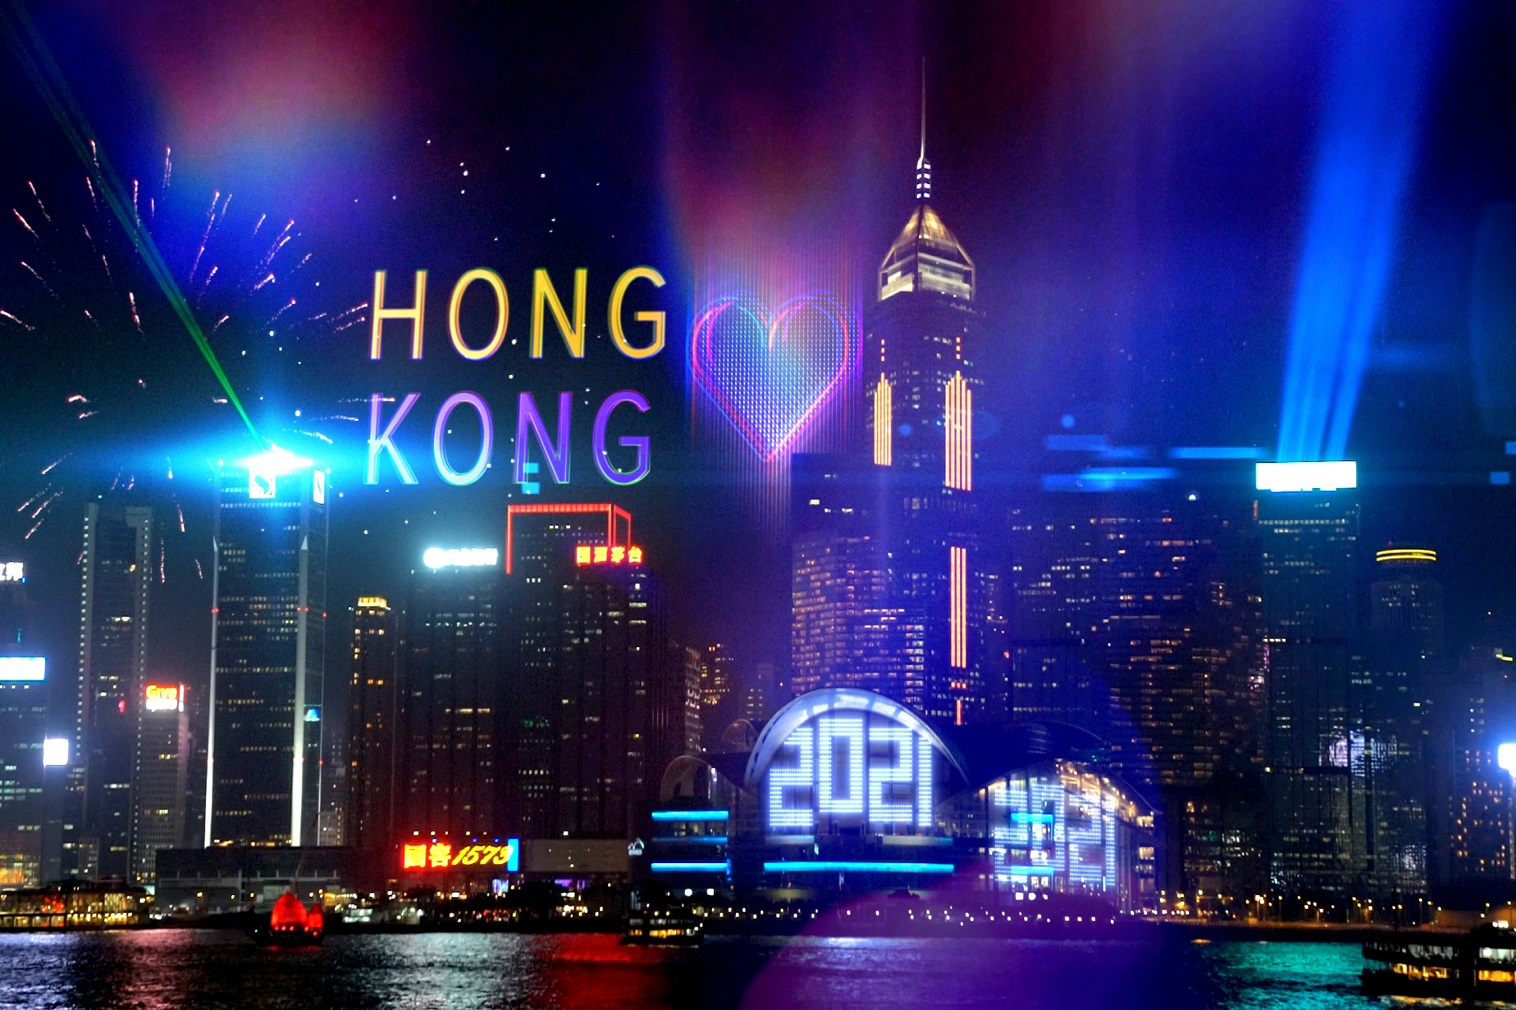 The Covid-19 pandemic is not going to stop the Hong Kong Tourism Board (HKTB) from sharing festive cheers and the appeal of Hong Kong with the rest of the world.